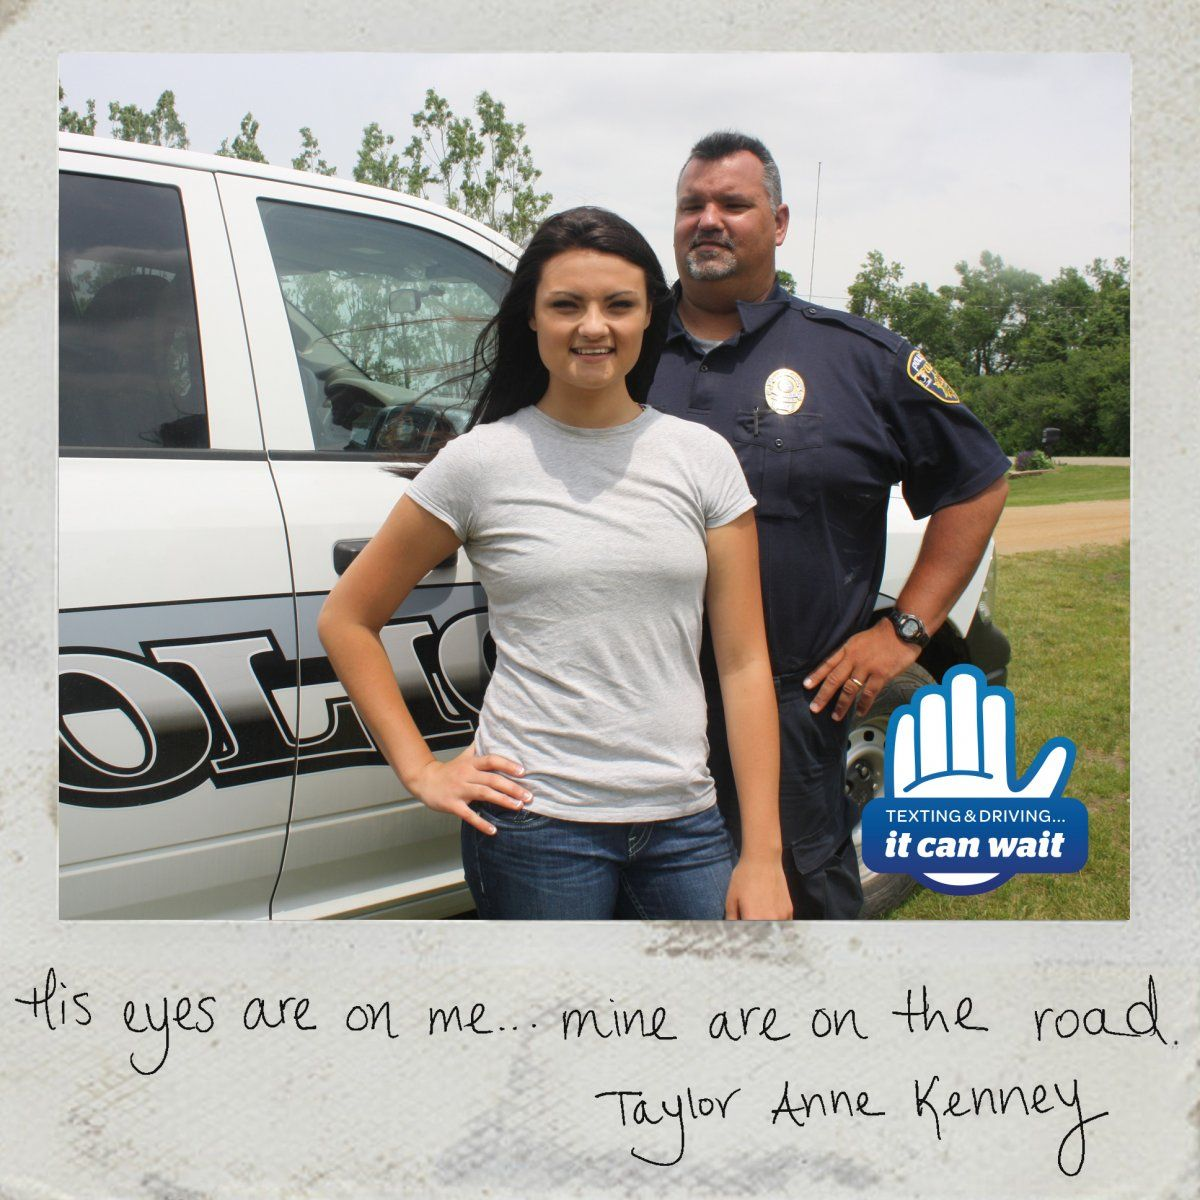 """Reason 52 #ItCanWait: """"His eyes are on me…mine are on the road."""" Take the pledge to never text and drive again at itcanwait.com"""